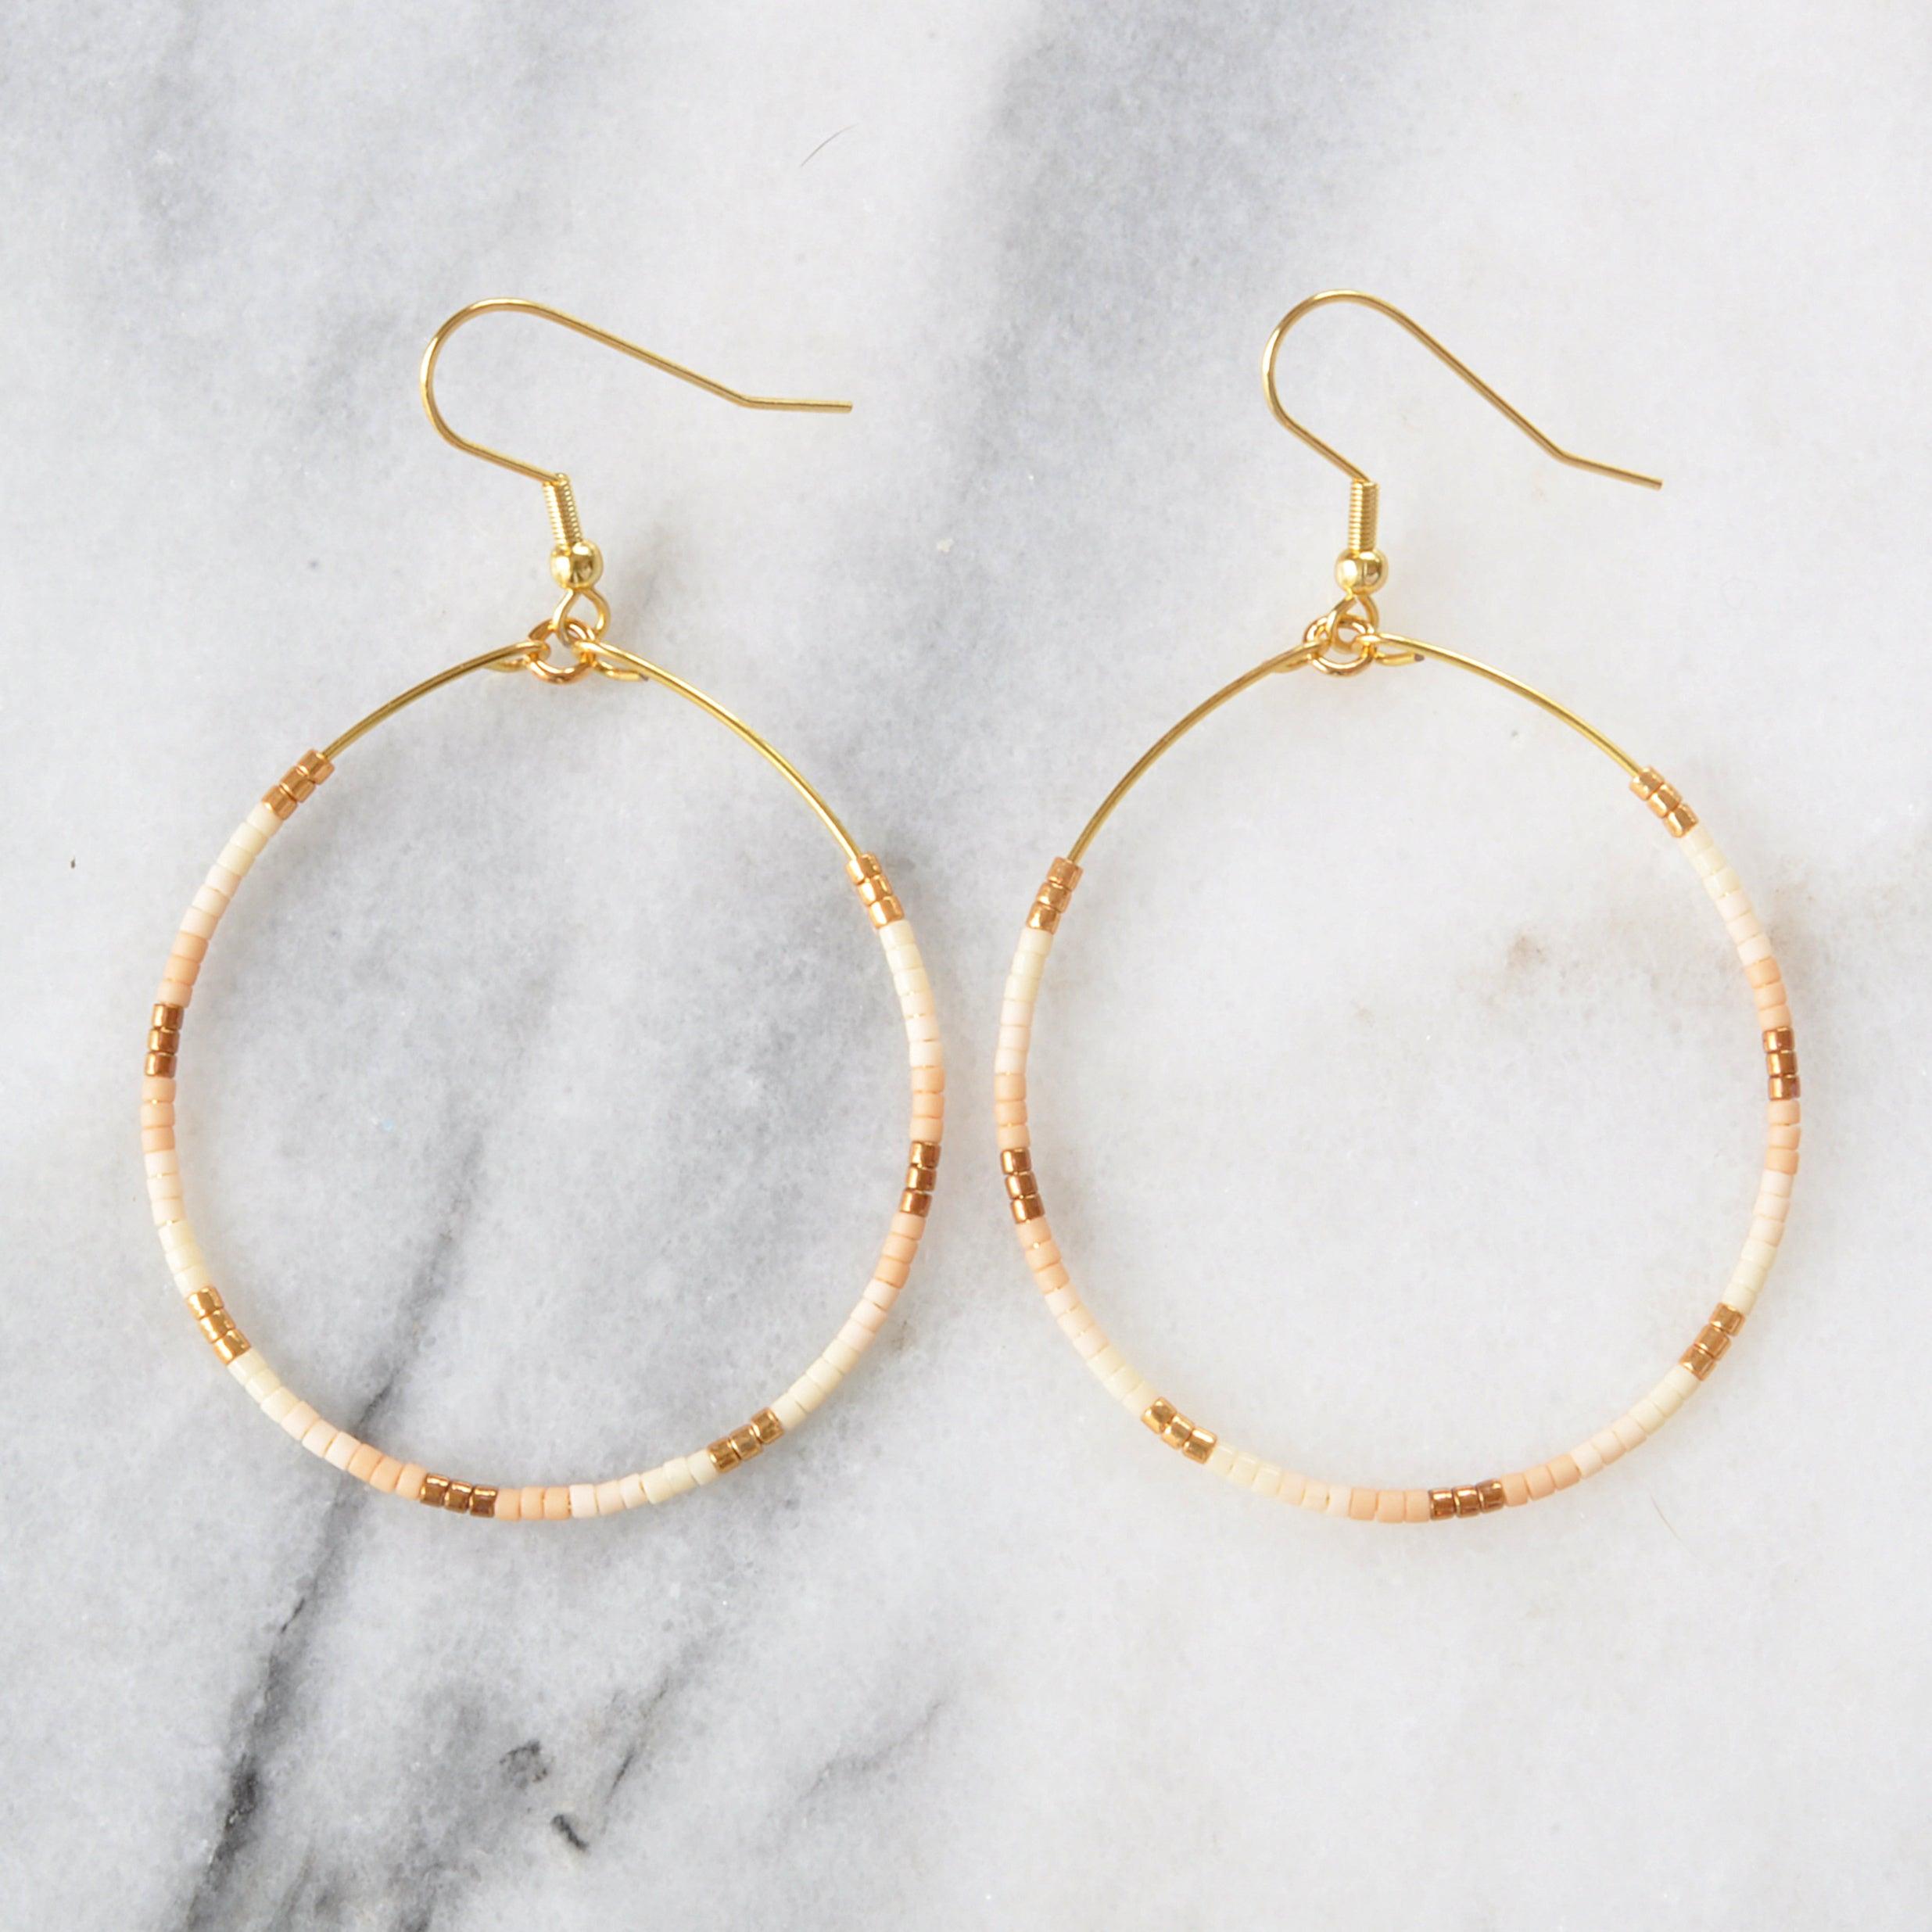 Libby & Smee big beaded hoop earrings